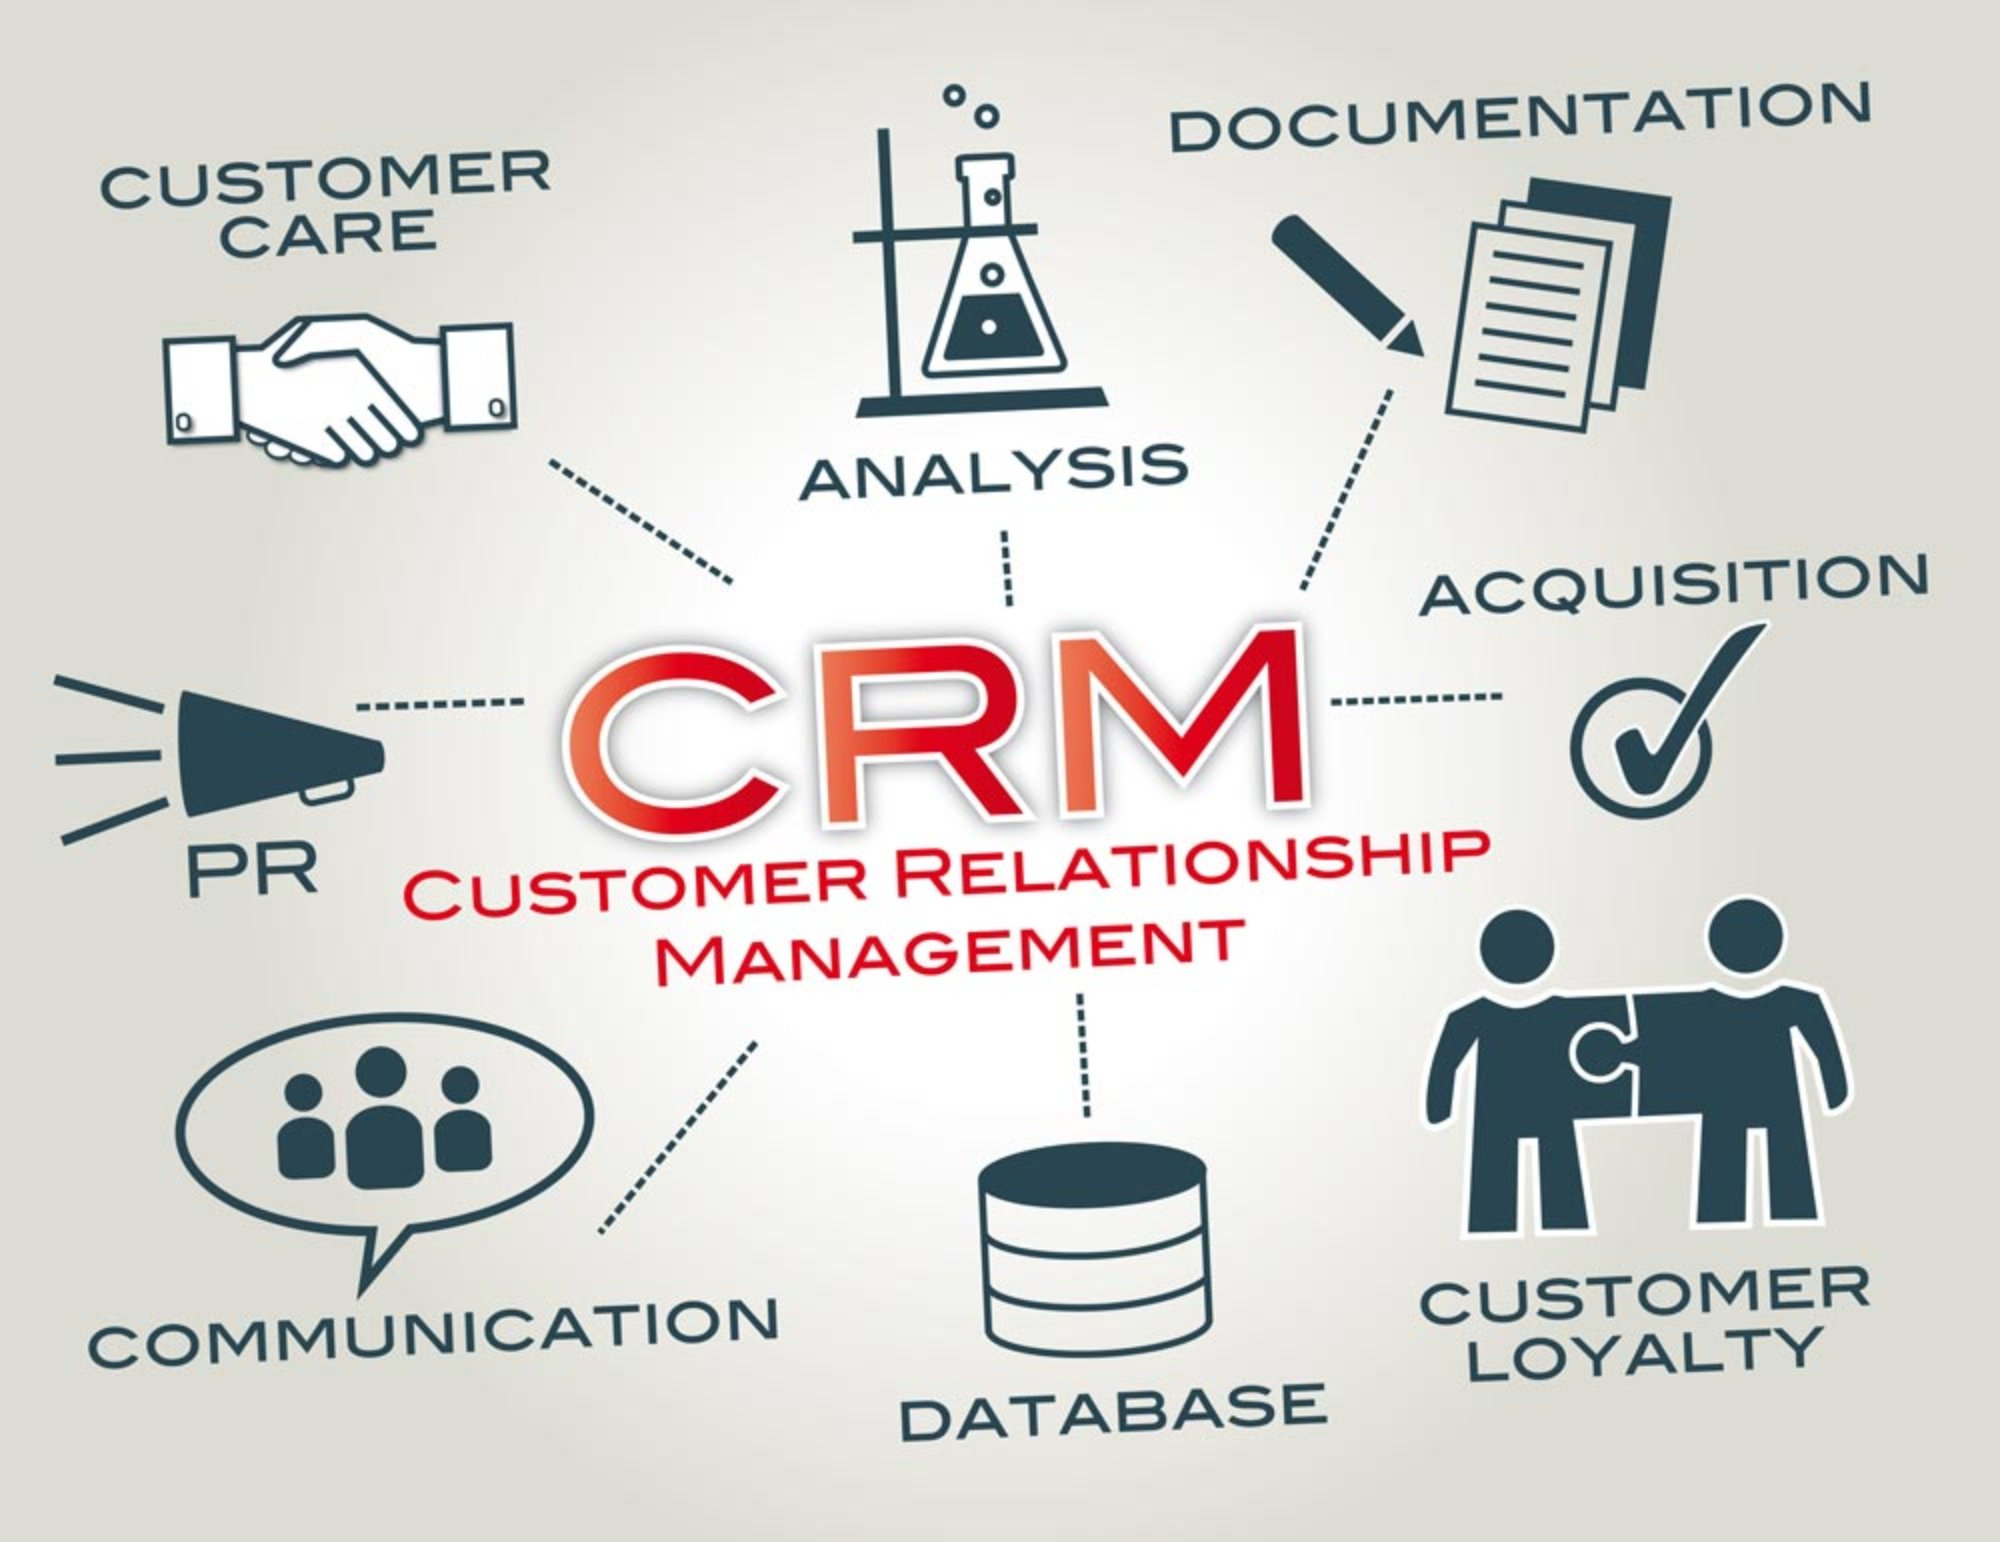 Working analysis and customer relationship of